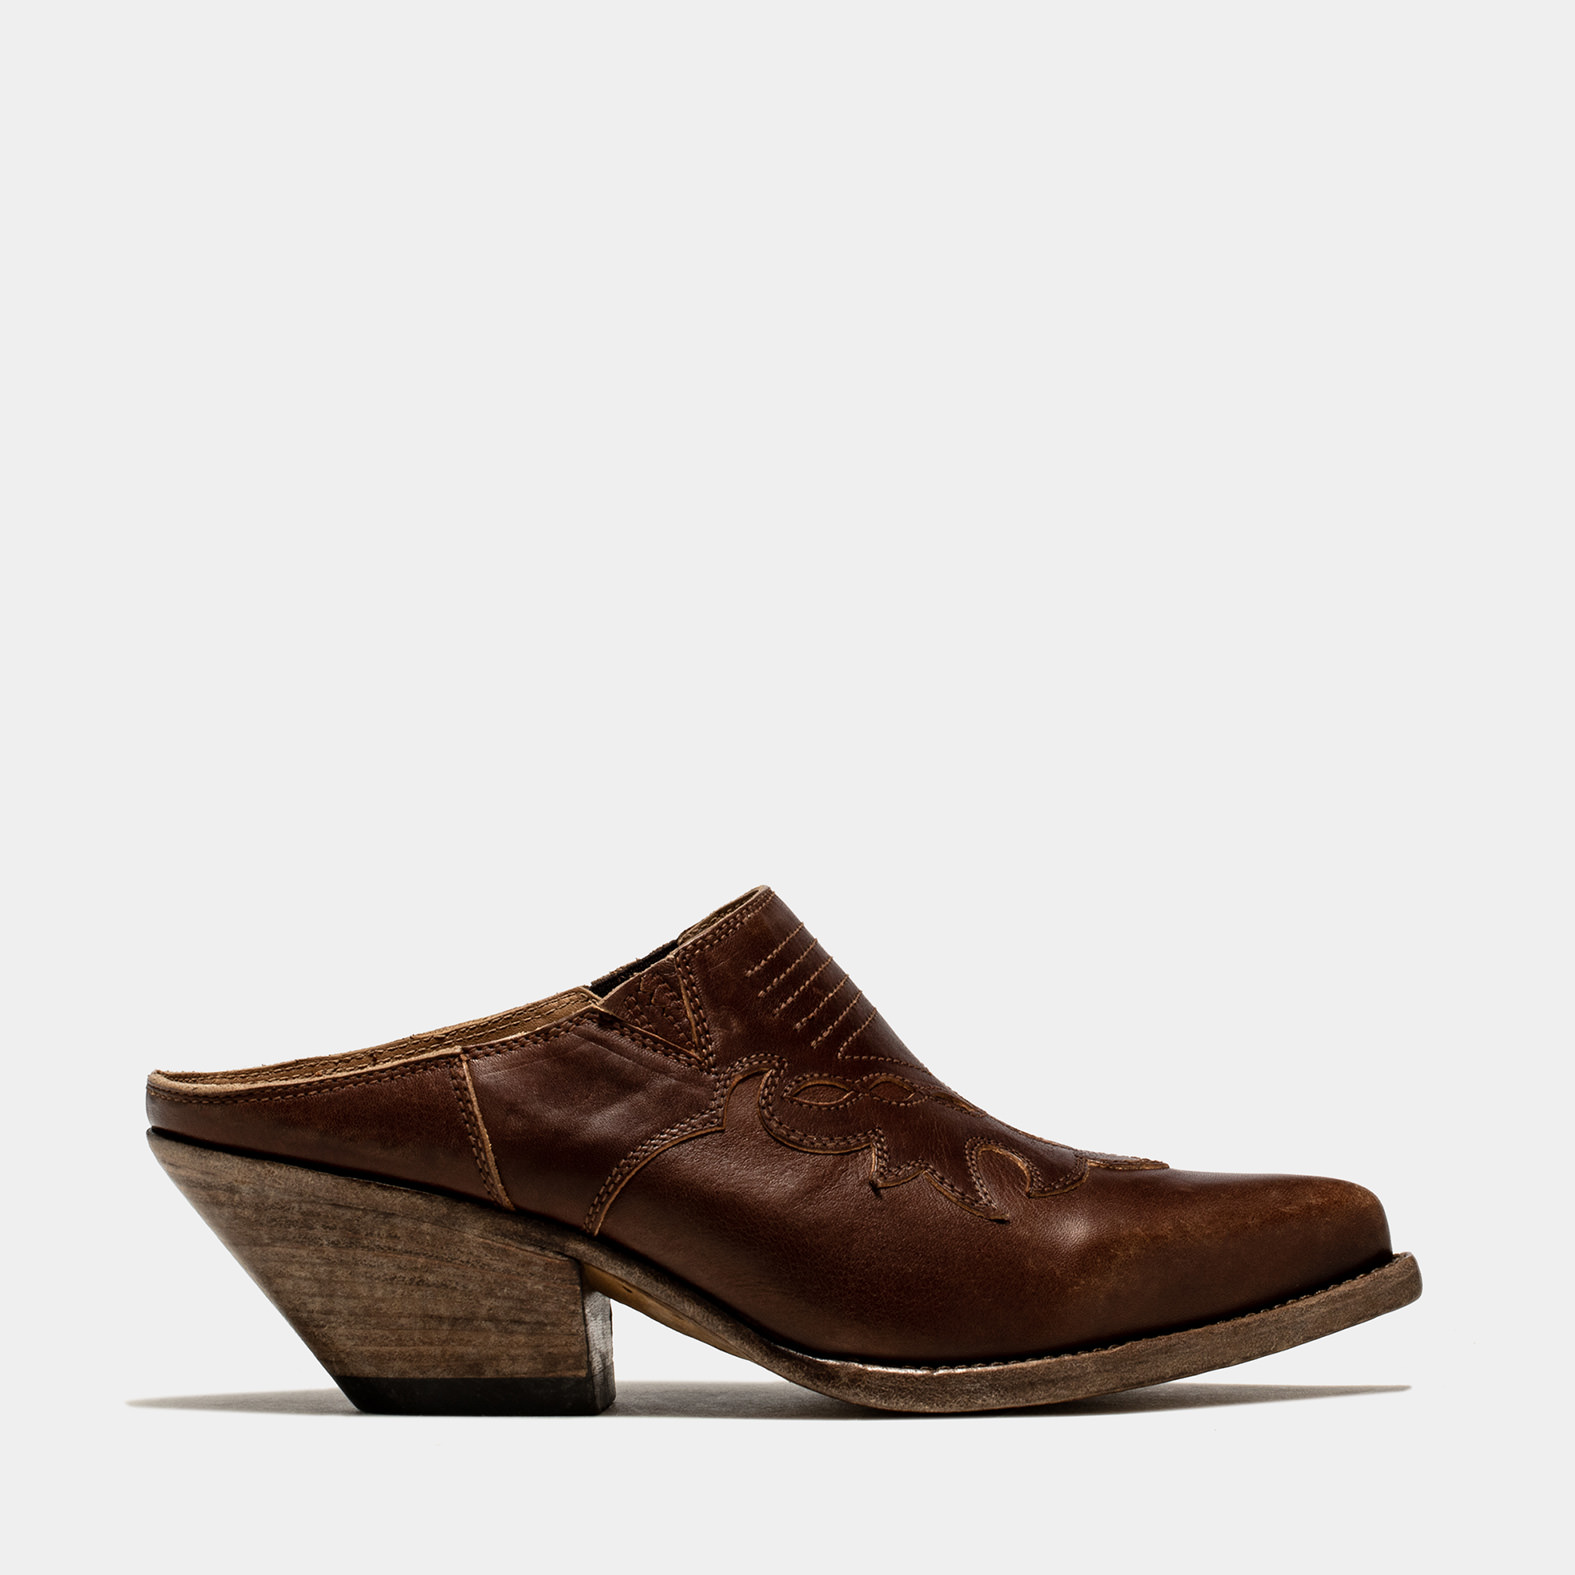 BUTTERO: ELISE CLOG IN DARK BROWN LEATHER